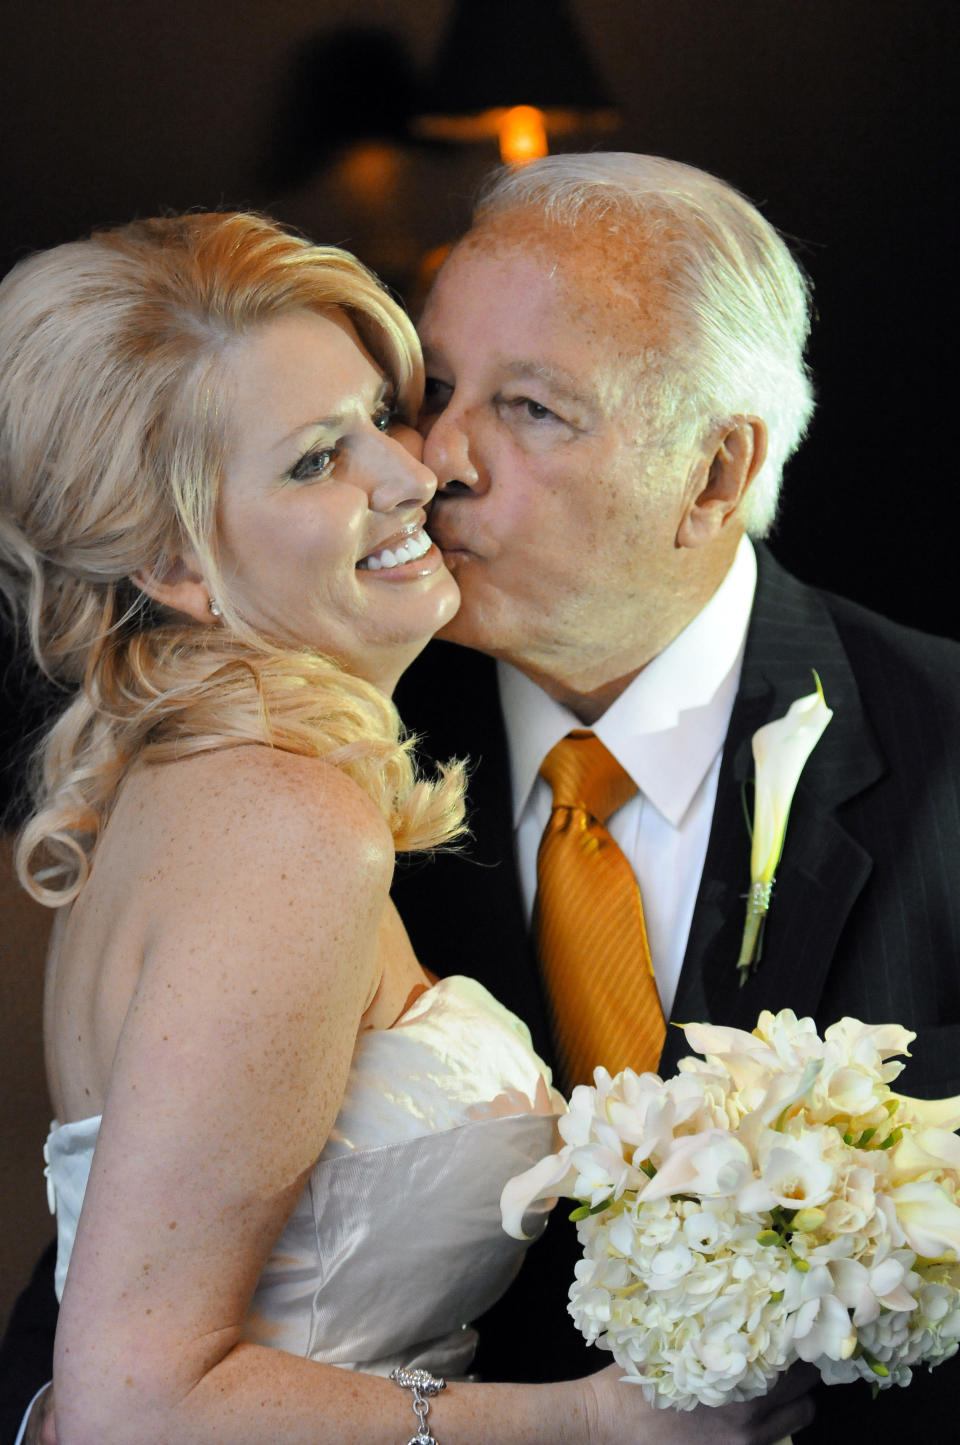 FILE - In this July 29, 2011, file photo, former Governor Edwin Edwards, right, kisses his new bride, Trina Grimes Scott, after a ceremony in the French Quarter in New Orleans, La. Edwin Washington Edwards, the high-living four-term governor whose three-decade dominance of Louisiana politics was all but overshadowed by scandal and an eight-year federal prison stretch, died Monday, July 12, 2021 . He was 93. Edwards died of respiratory problems with family and friends by his bedside, family spokesman Leo Honeycutt said. He had suffered bouts of ill health in recent years and entered hospice care this month at his home in Gonzales, near the Louisiana capital. (AP Photo/Cheryl Gerber, File)